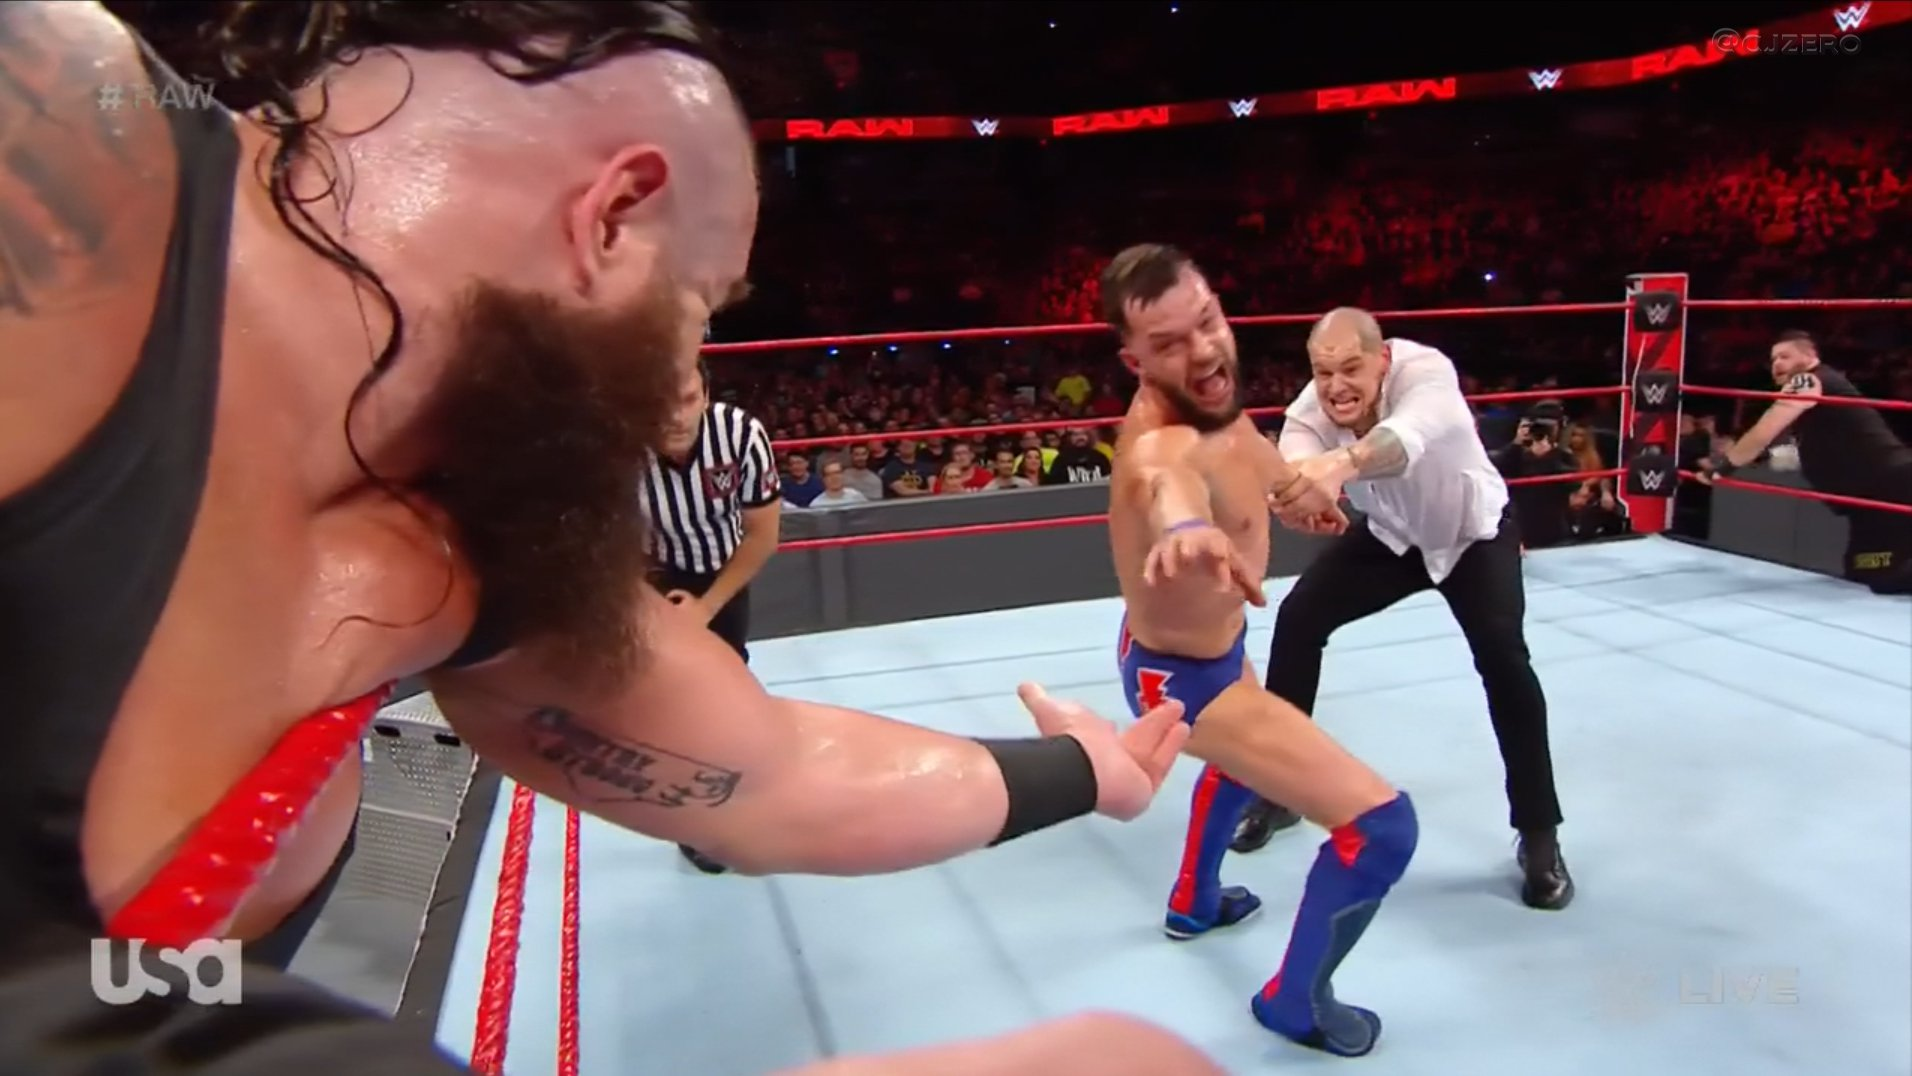 Gimme more Braun cam, hell just strap a GoPro to him https://t.co/EVkjuDhv2N